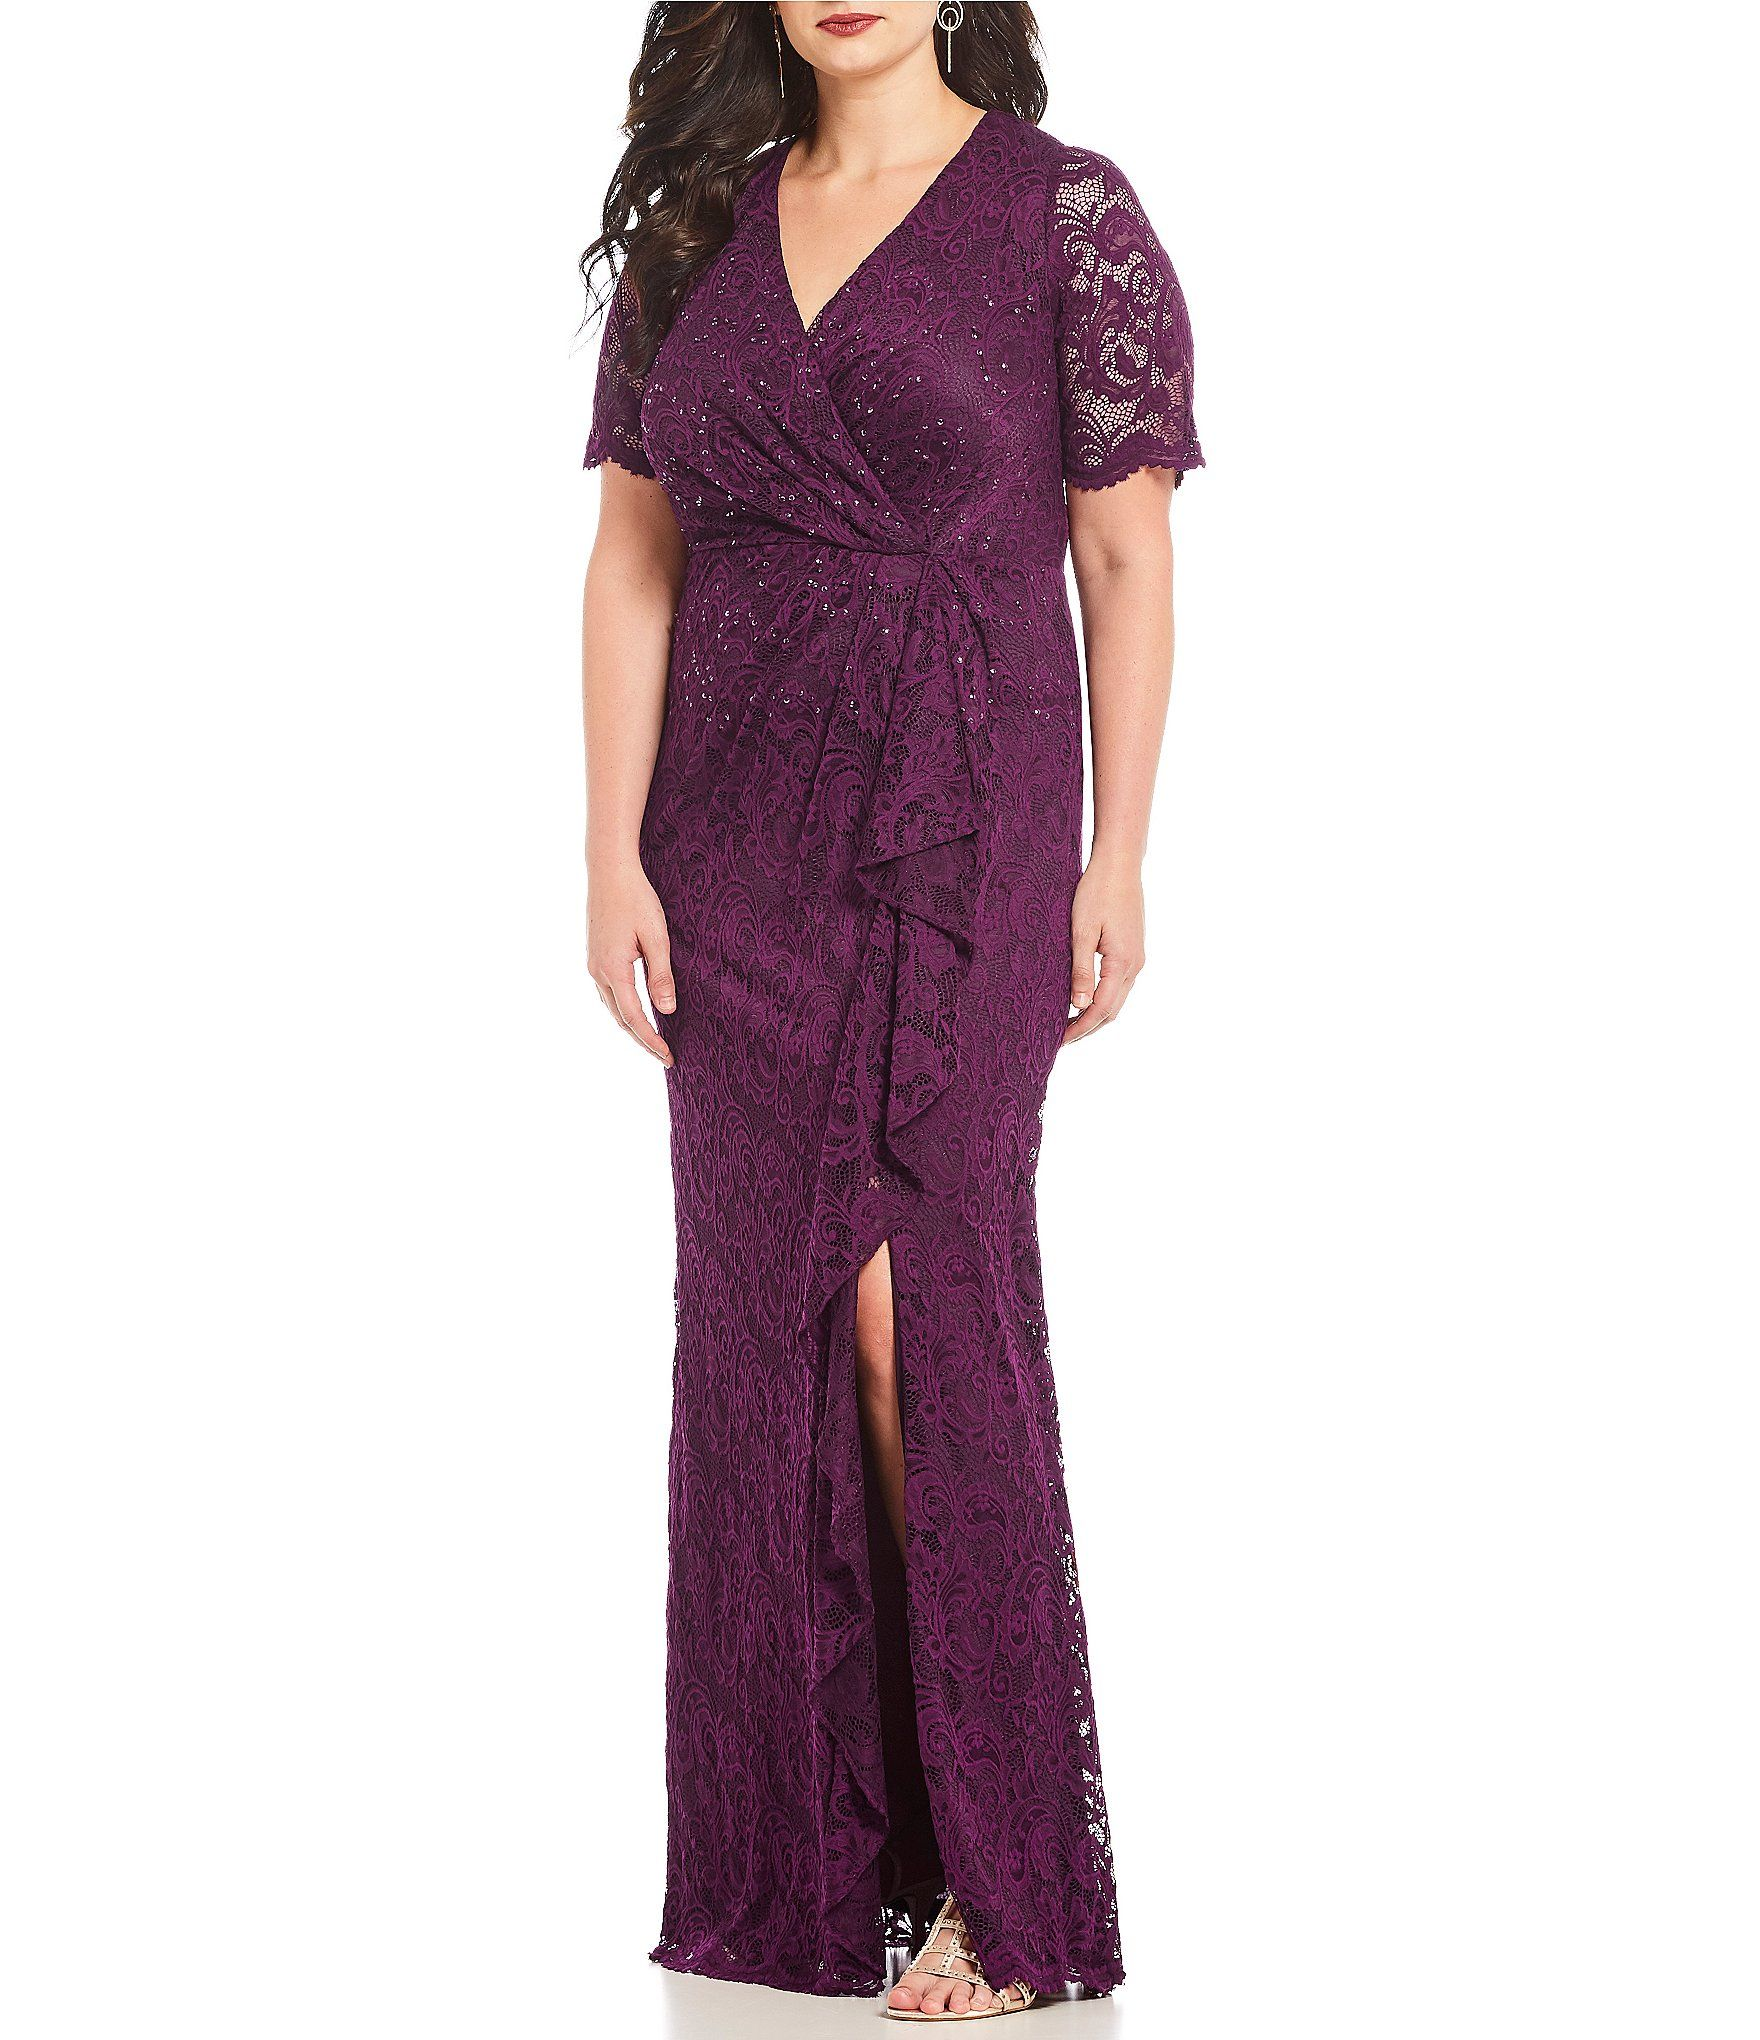 22dac07588e Adrianna Papell Plus Size Draped Beaded Lace Gown  Dillards